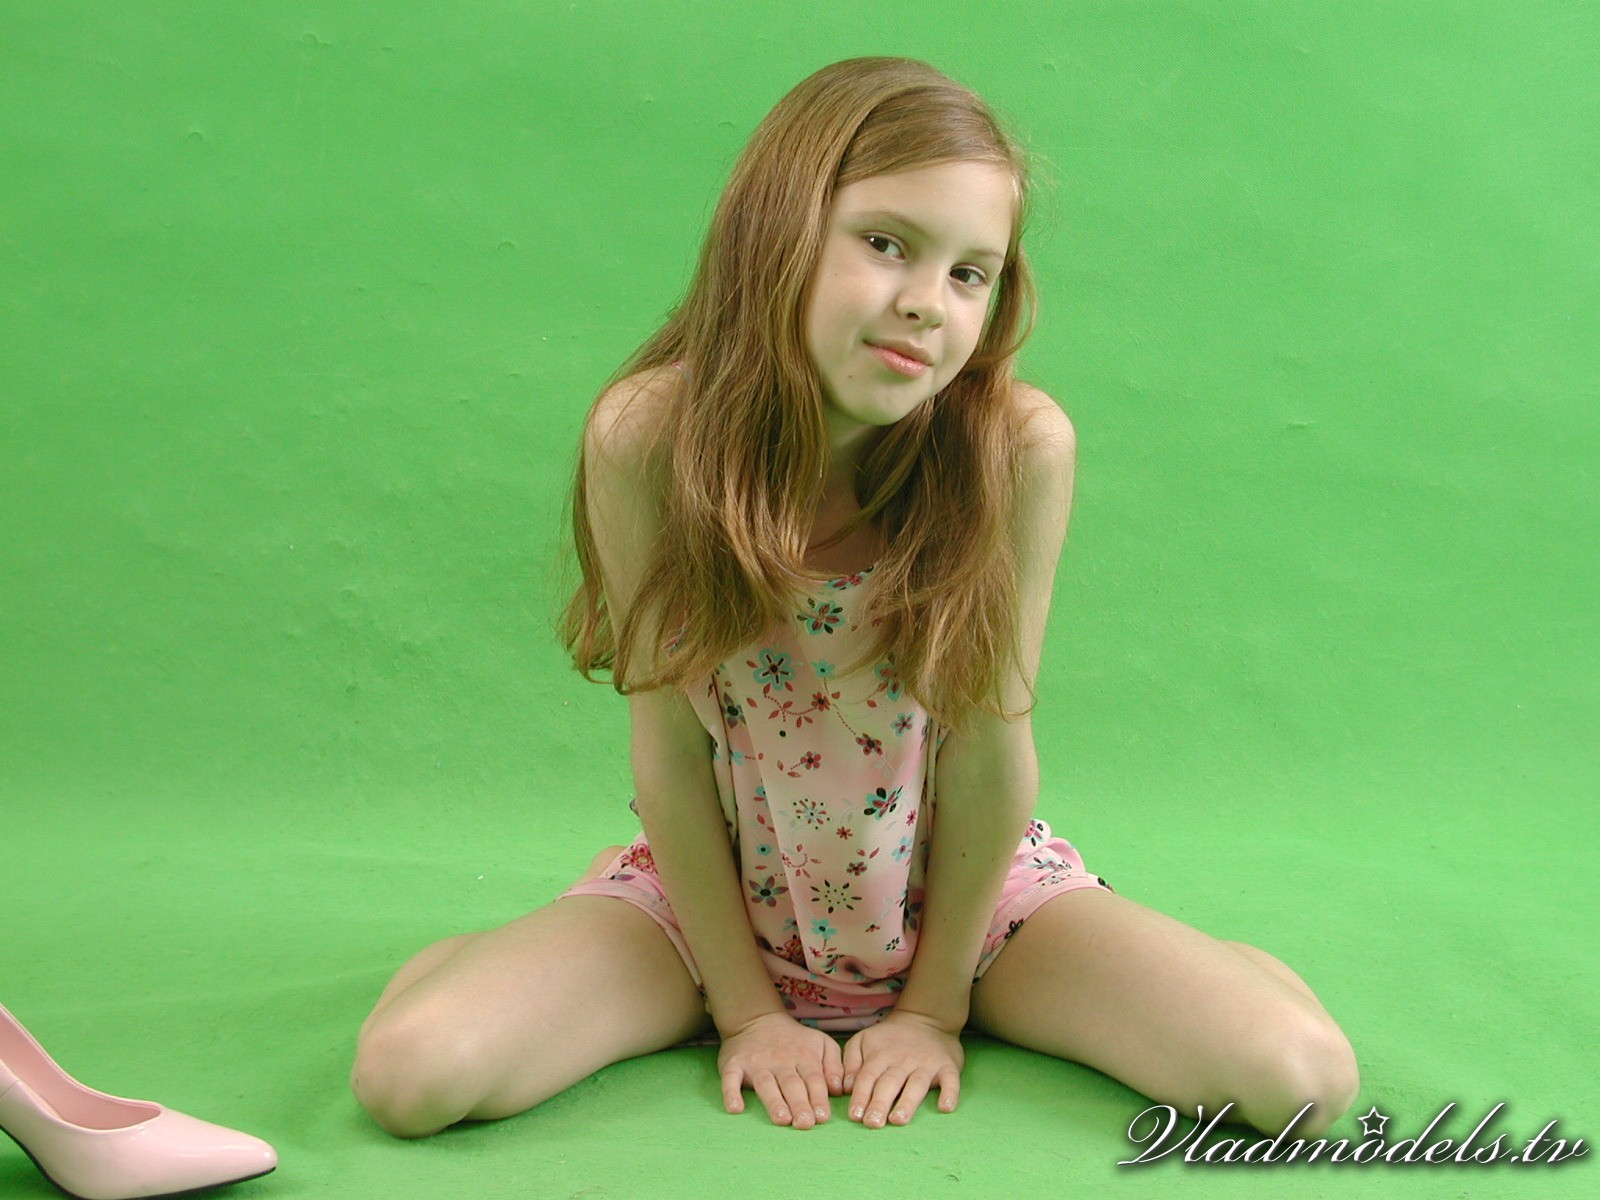 Teen Model RU http://www.vladmodels.tv/free-tour-set